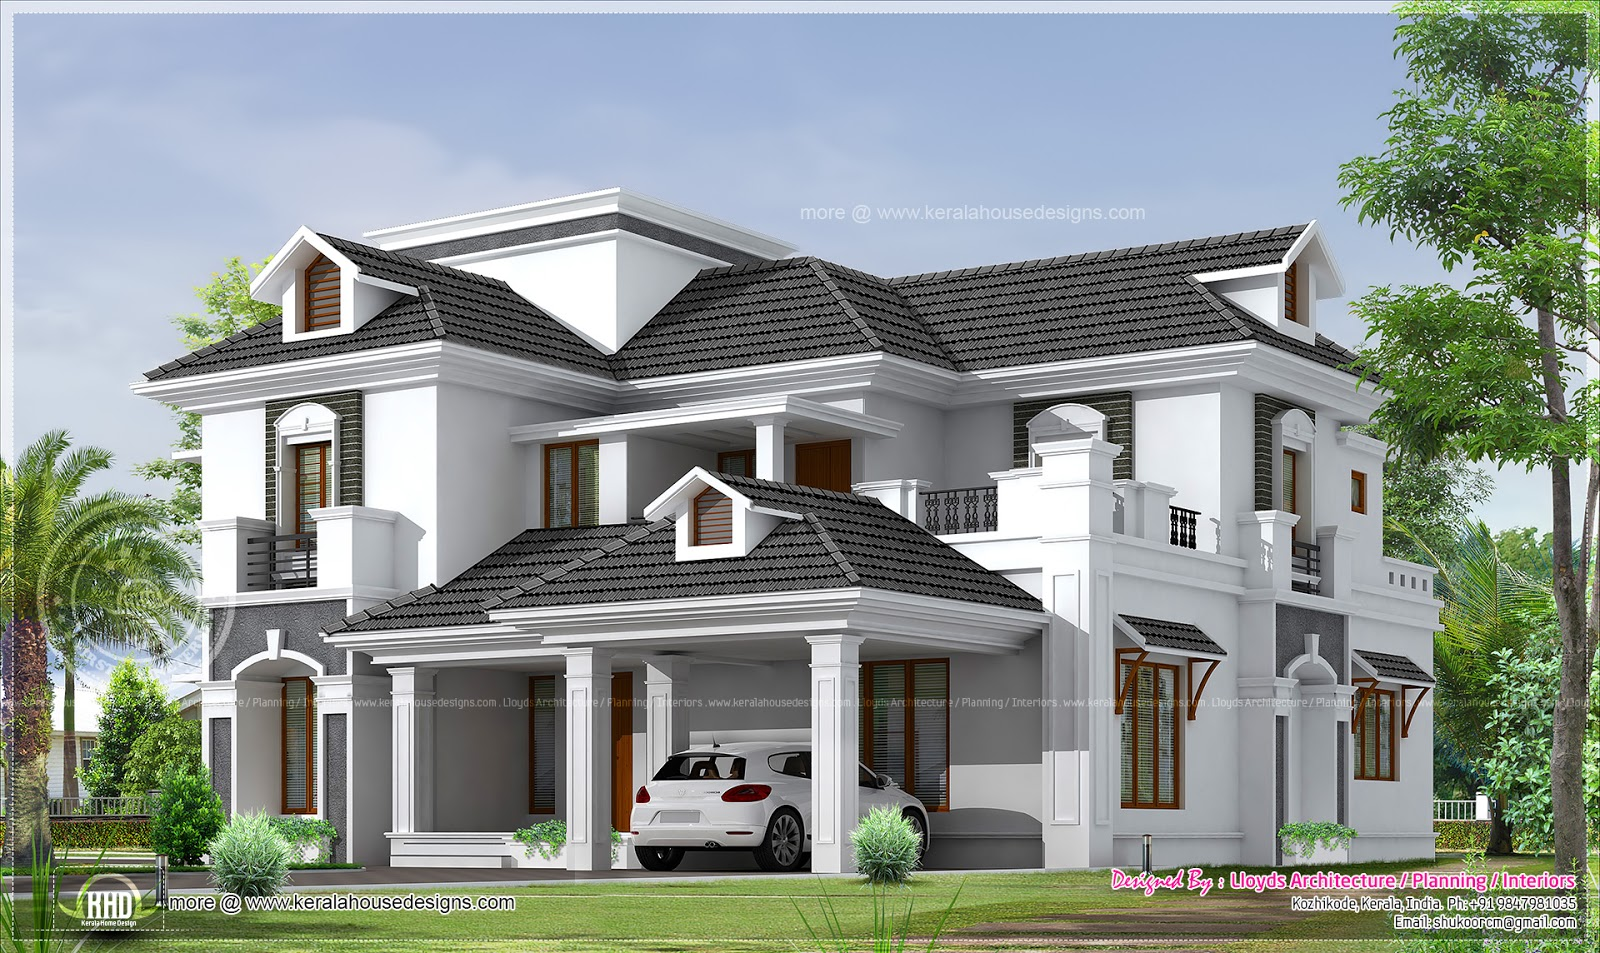 Home Mansion   Home Design And Decor